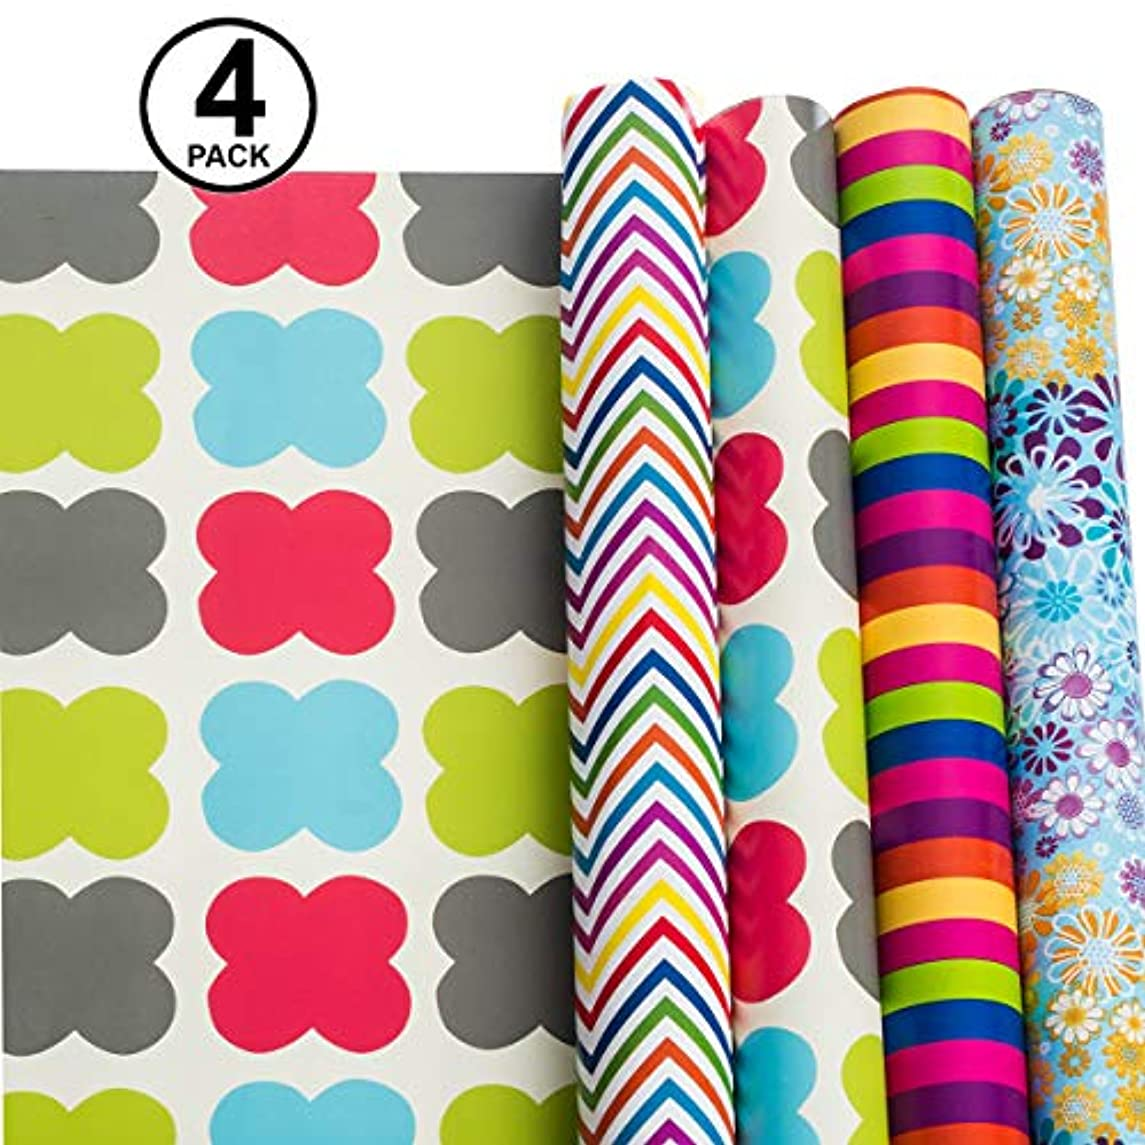 Gift Wrapping Paper – All Occasion Wrapping Paper – Wrapping Paper – Premium Gift Wrap, 4 Rolls - 2.5 ft x 10 ft per Roll, Includes 7 Bows, 2 Rolls of Ribbons